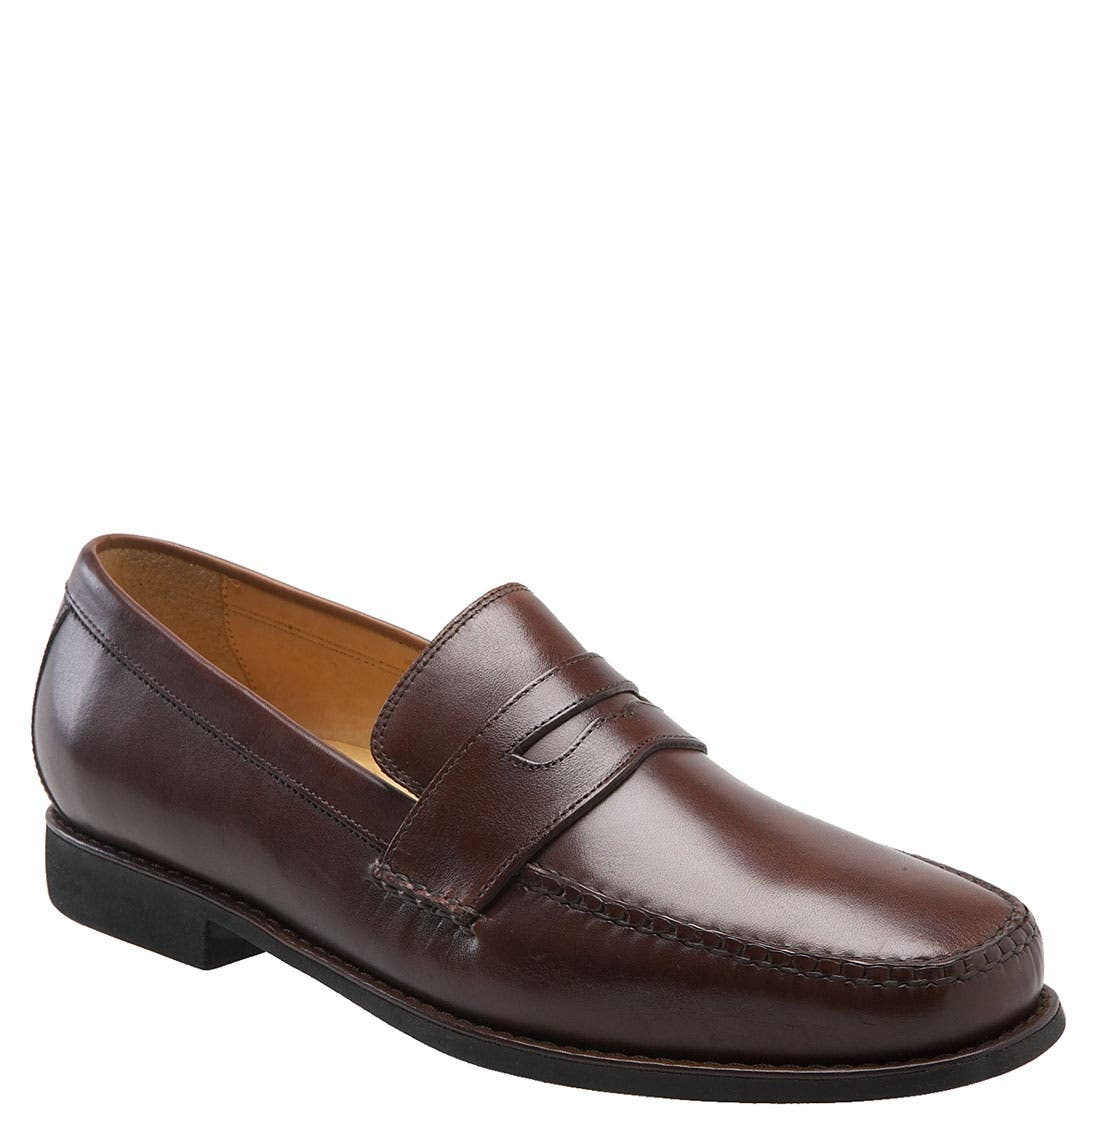 'Ainsworth' Penny Loafer,                             Main thumbnail 1, color,                             Antique Mahogany